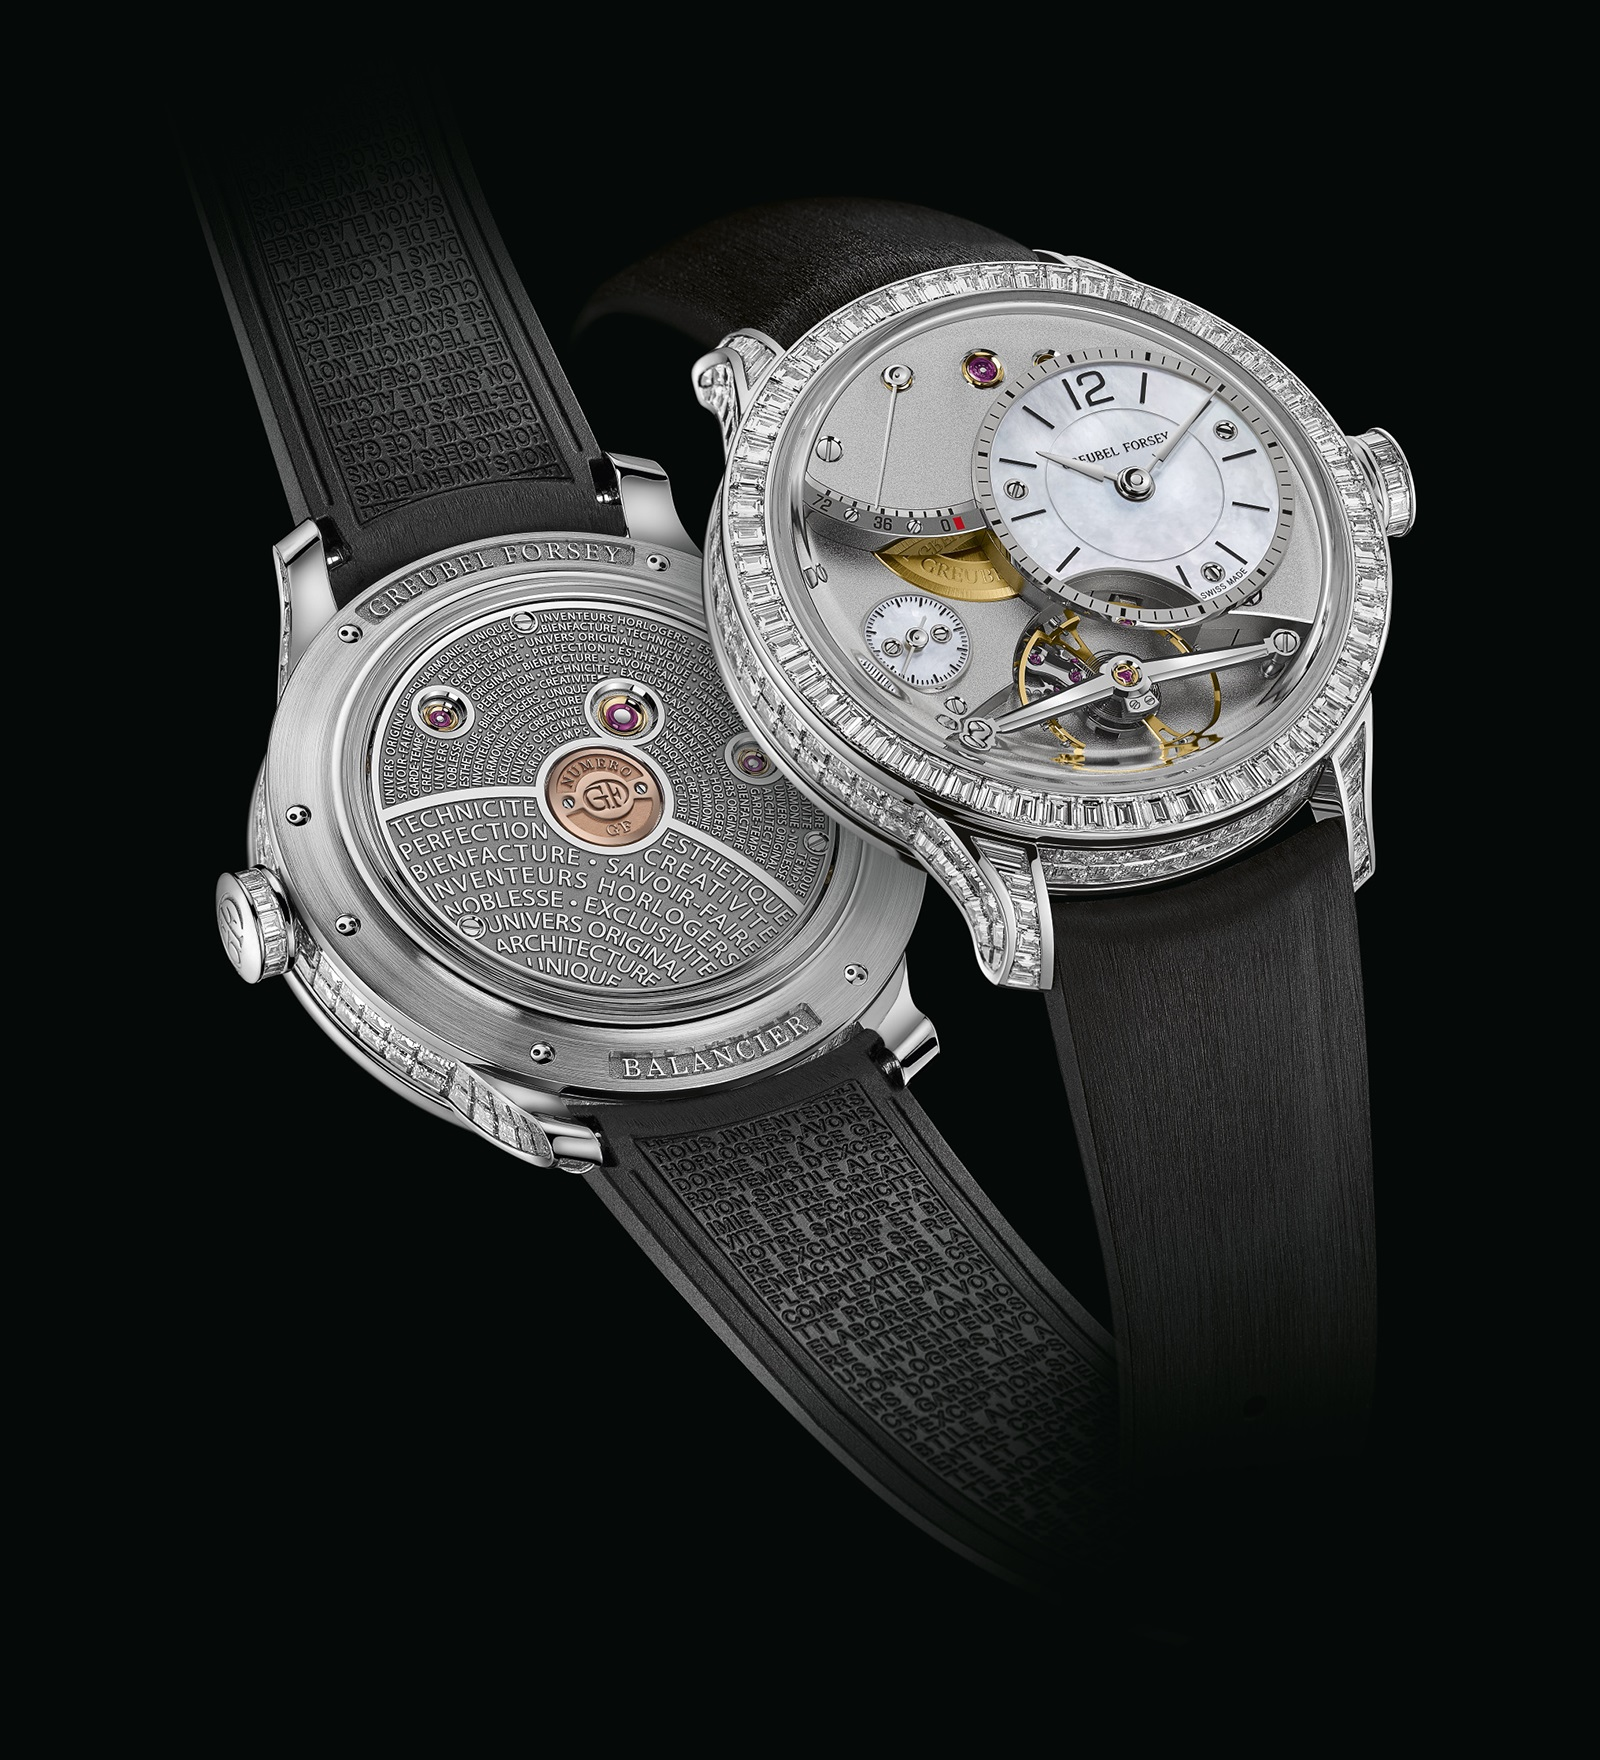 Diamond Set Balancier Contemporain, with invisible set baguette-cut diamonds across the case, bezel and crown.